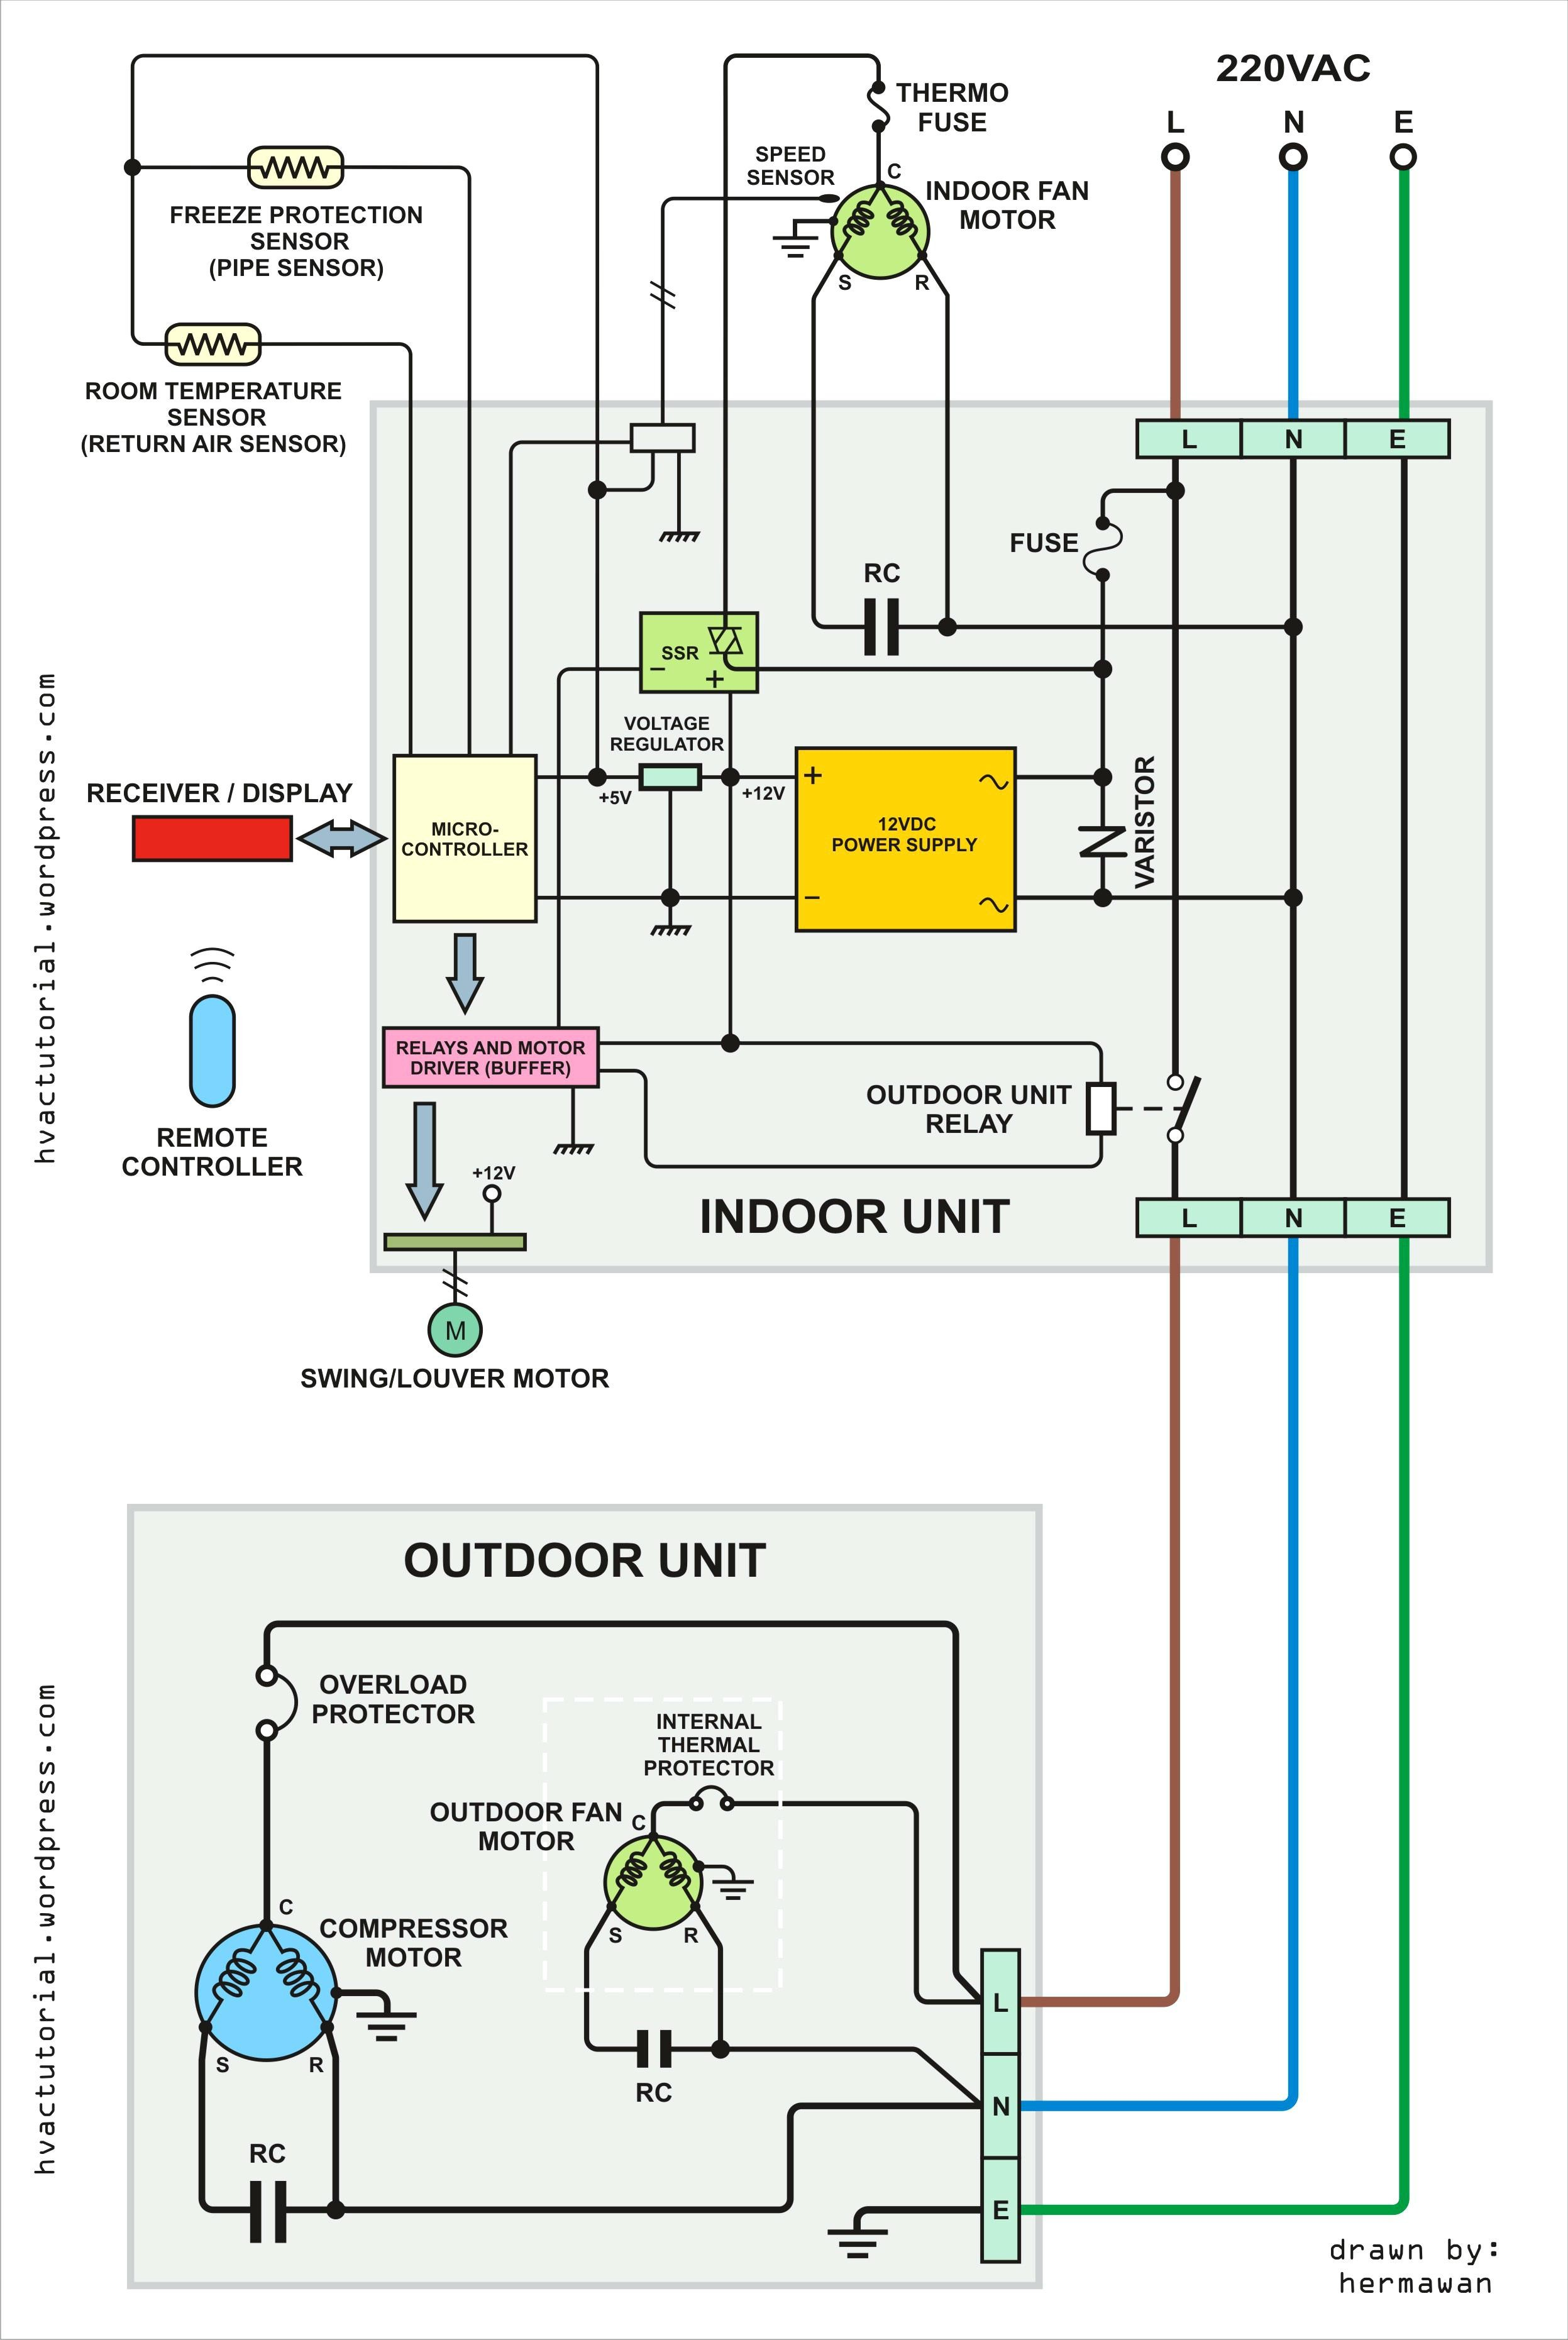 wiring hunter thermostat 44905 explore schematic wiring diagram u2022 rh webwiringdiagram today Trane Thermostat Wiring Diagram Nest Thermostat E Wiring Diagram